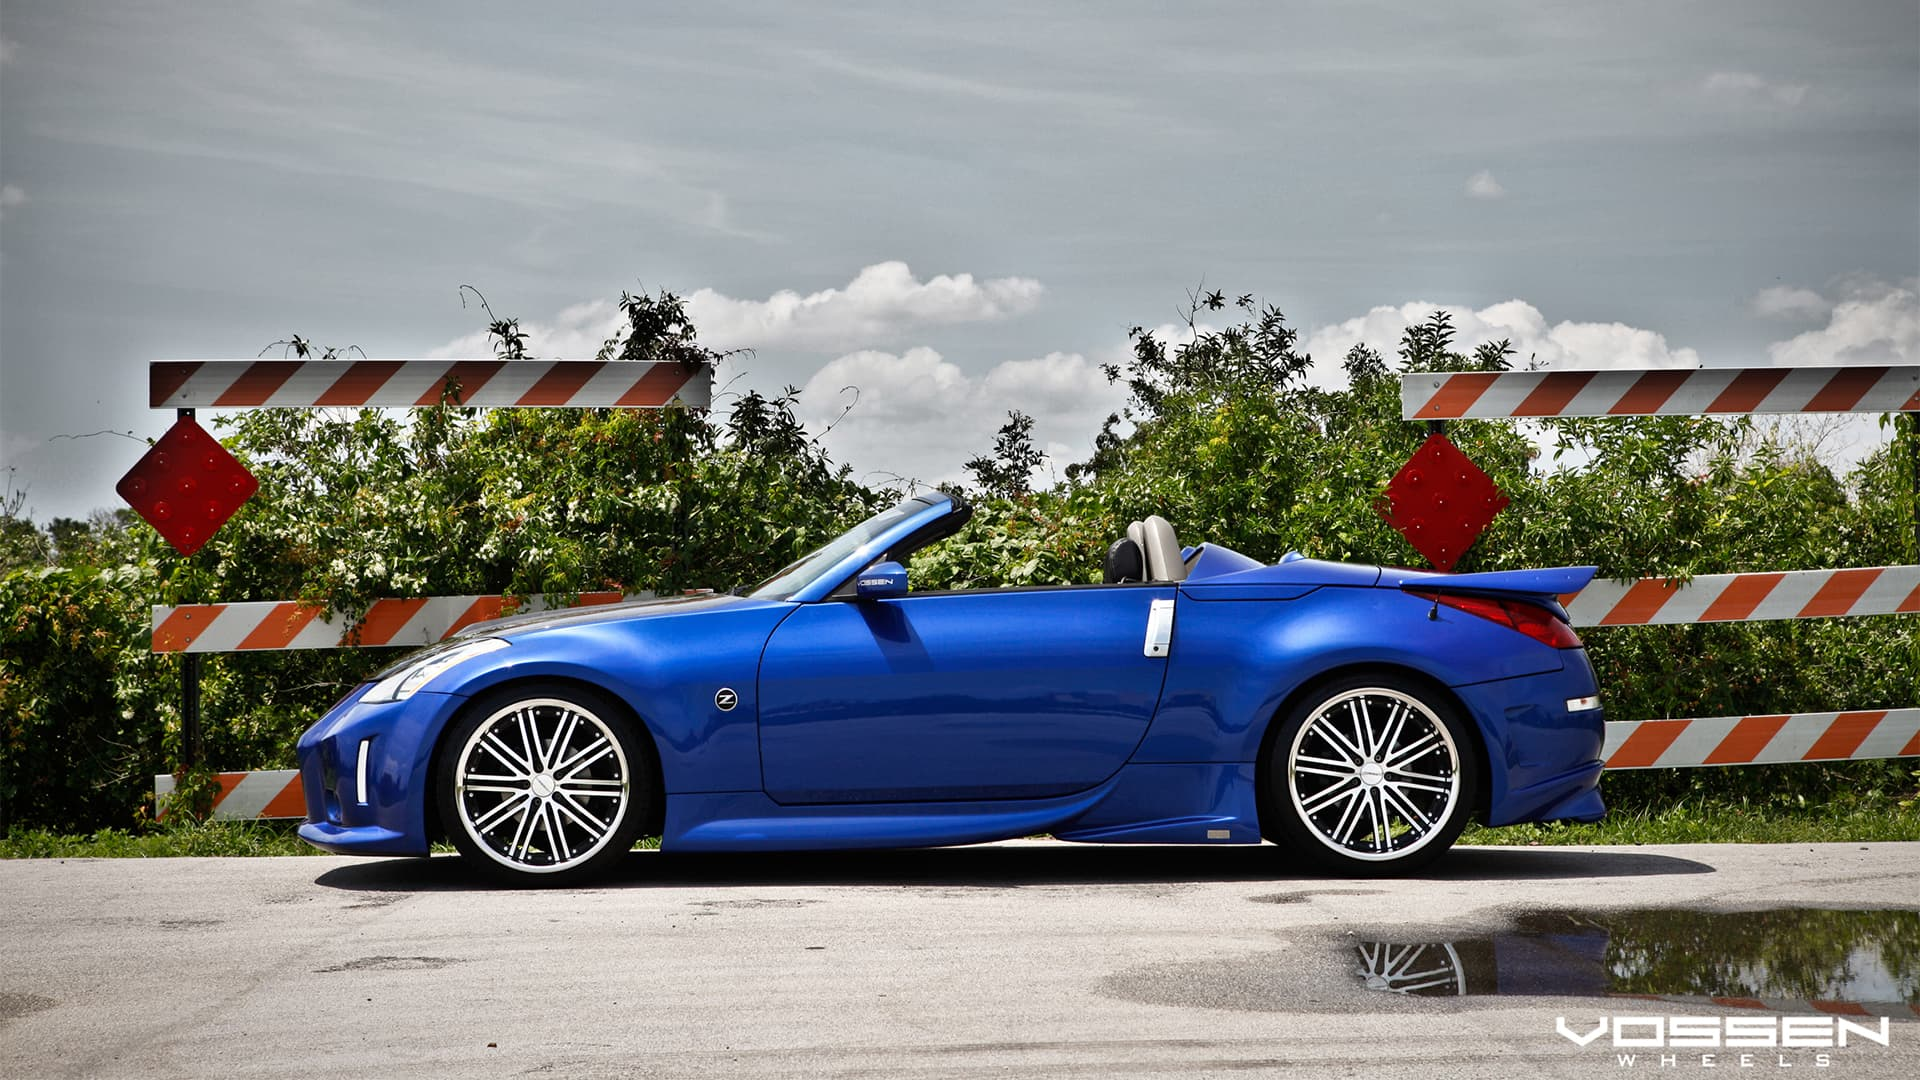 Nissan Z Roadster Wallpapers Hd Convertible Blue Silver Black